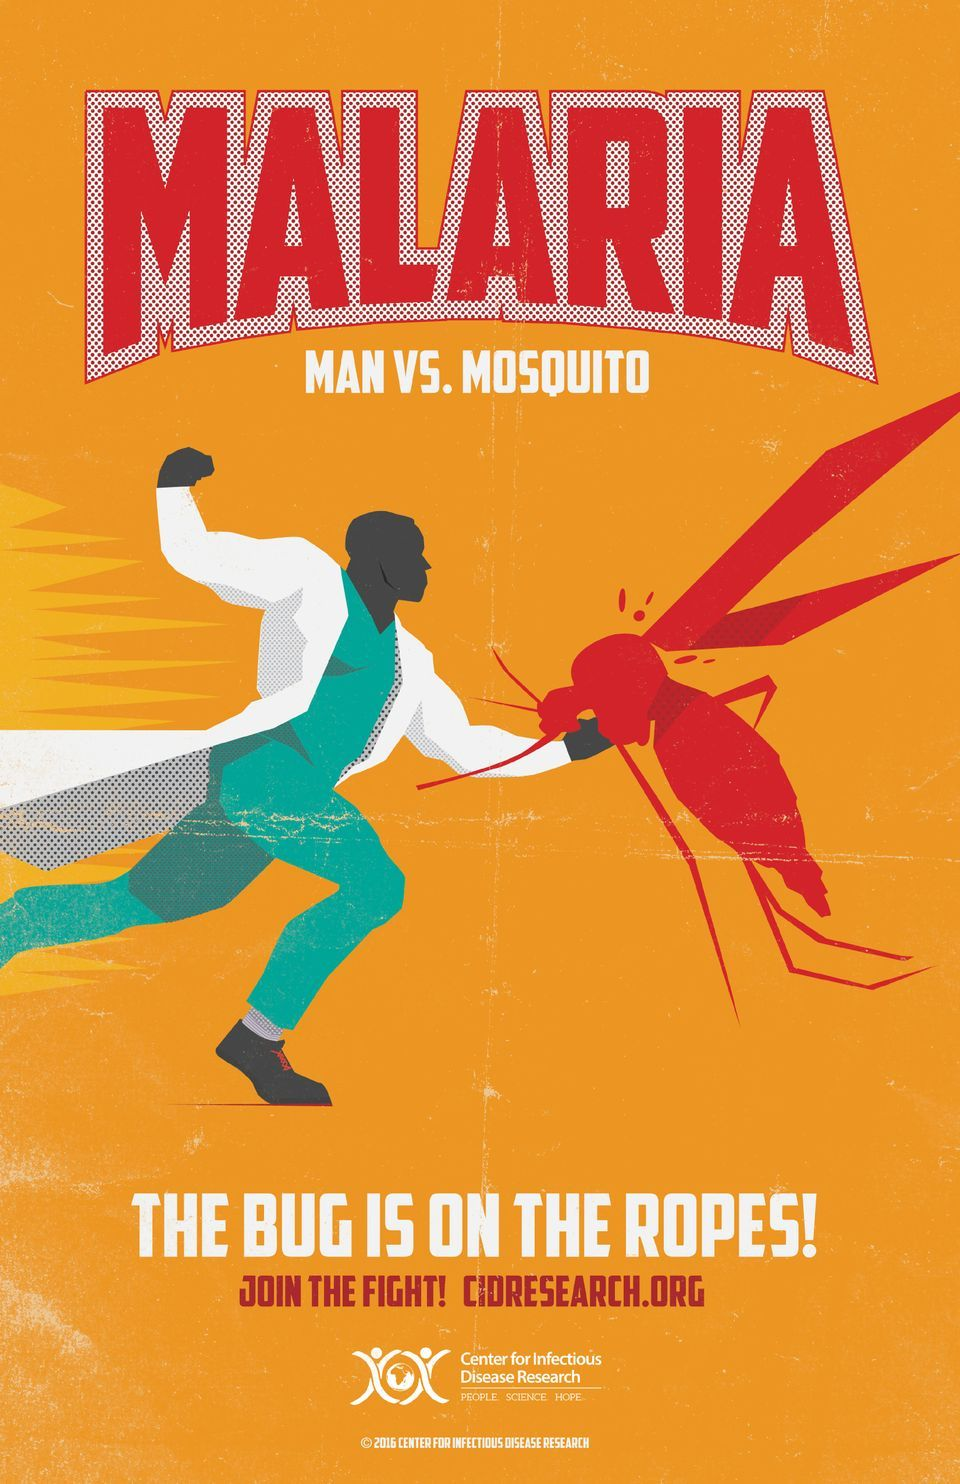 Retro Disease Fighting Posters Make Public Health Cool Again  HuffPost Life